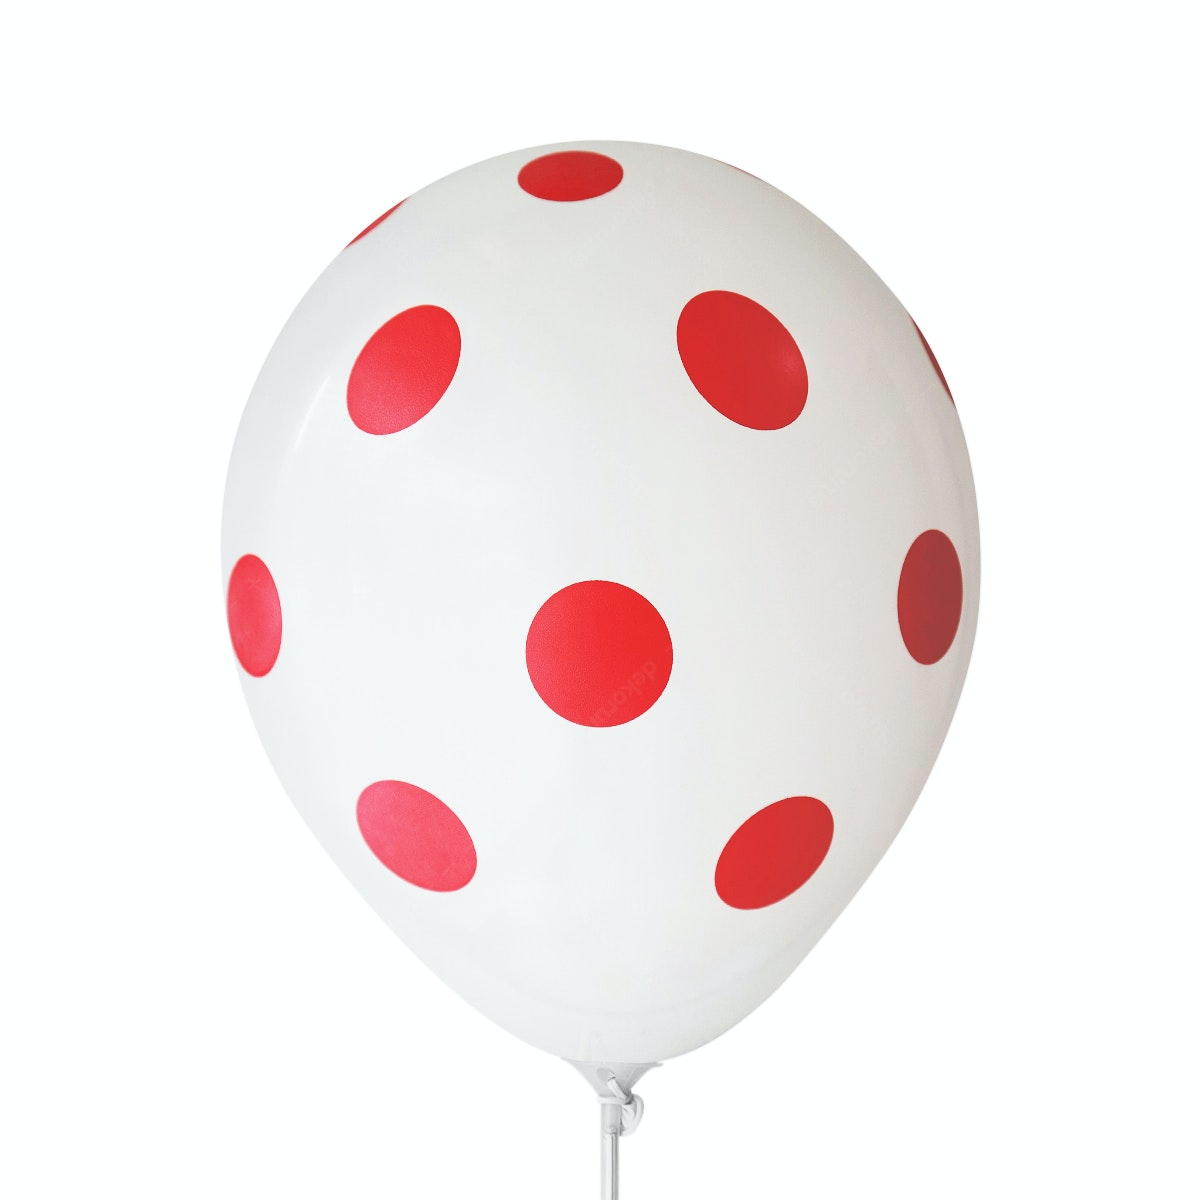 Adalima Balloon Balloon Polkadot White Red QQ